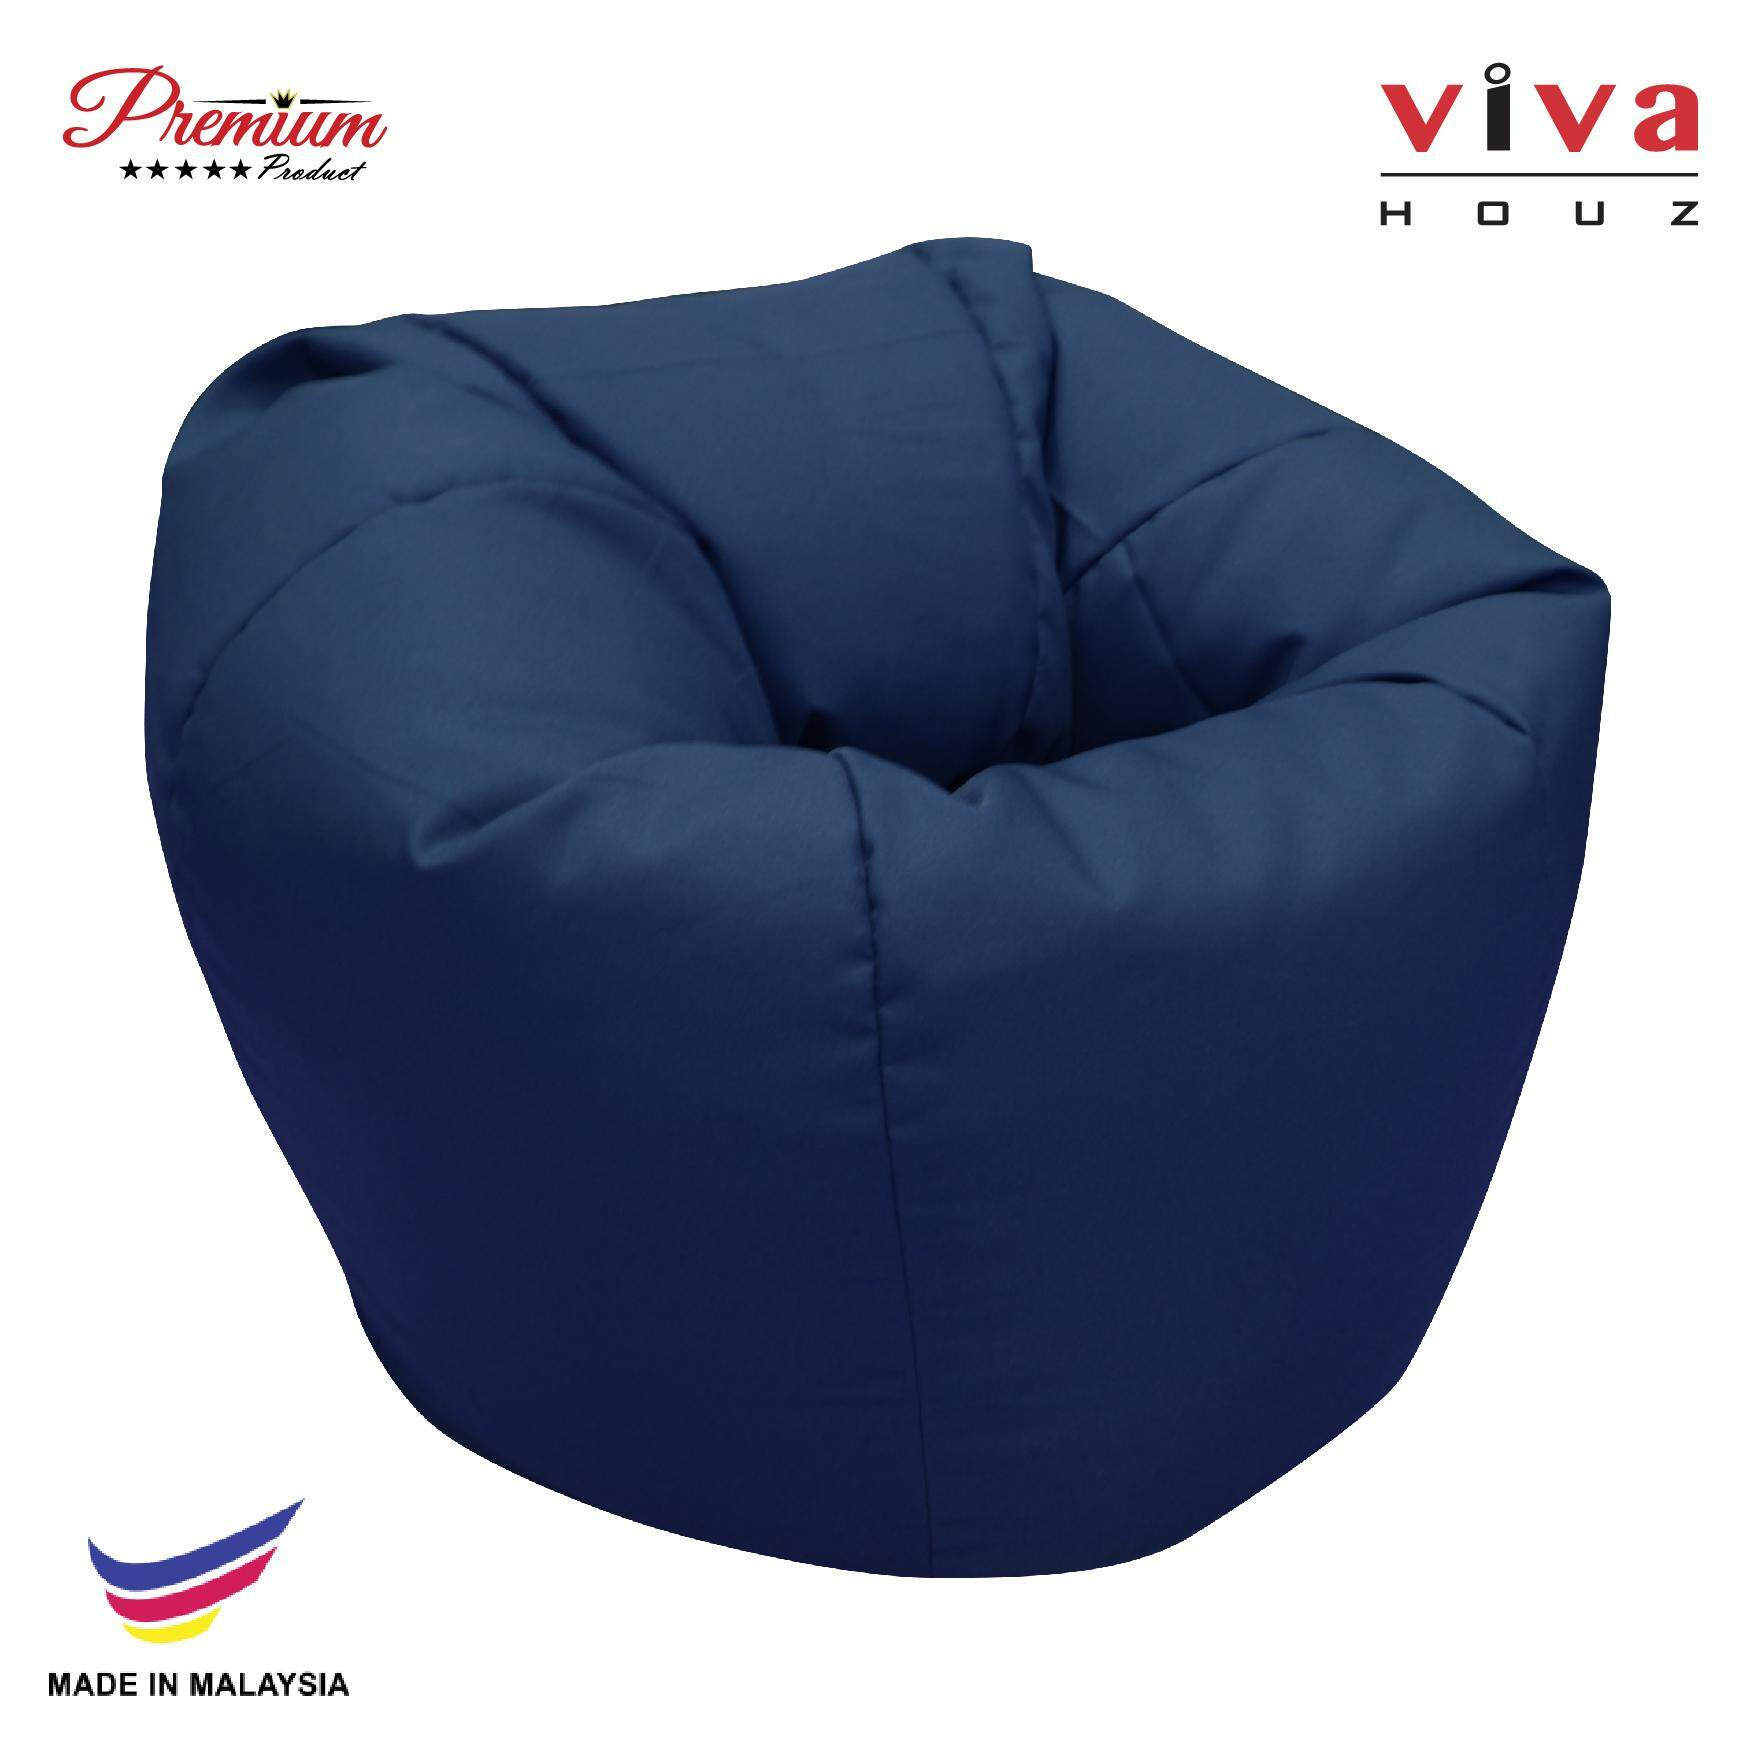 Hot Selling : Perfect Bean Bag Sofa Pouffe Chair L Size Navy Blue Made In Malaysia By Viva Living.